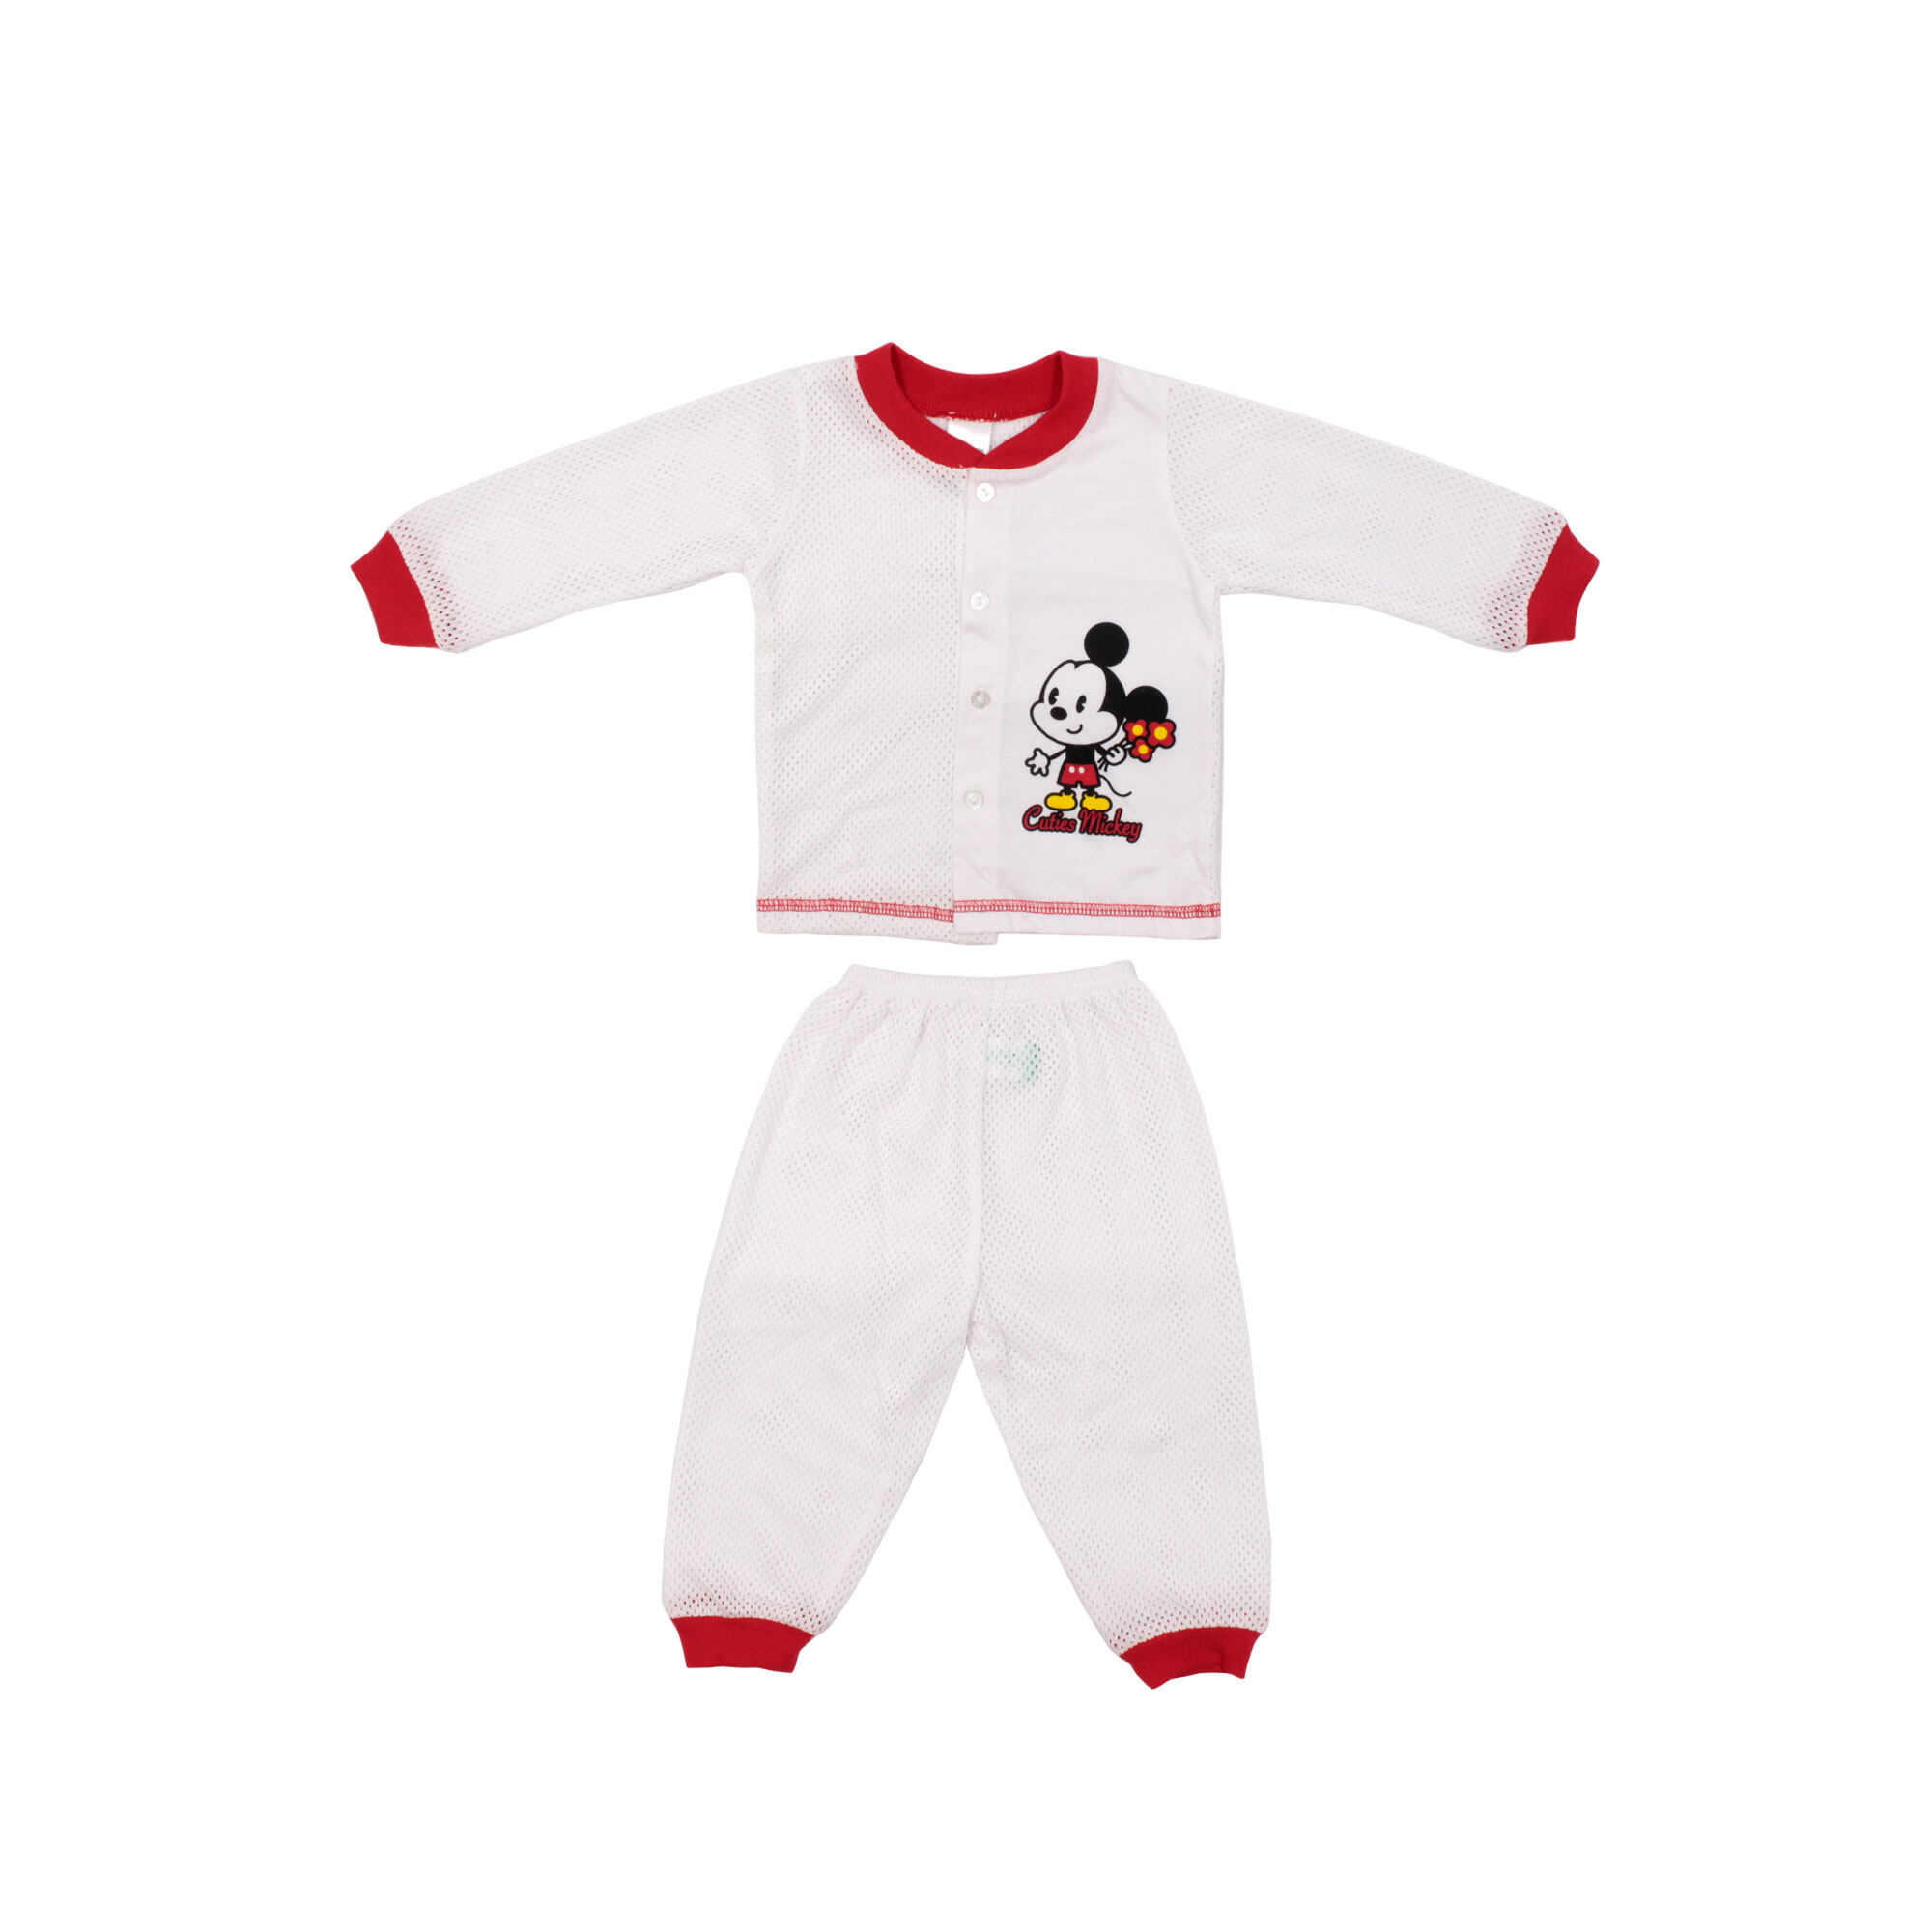 """[9.9] Disney Baby Mickey 4 Pcs Premium New Born Baby Clothes Gift Set 12- 18 Months Old - Long Sleeves"""